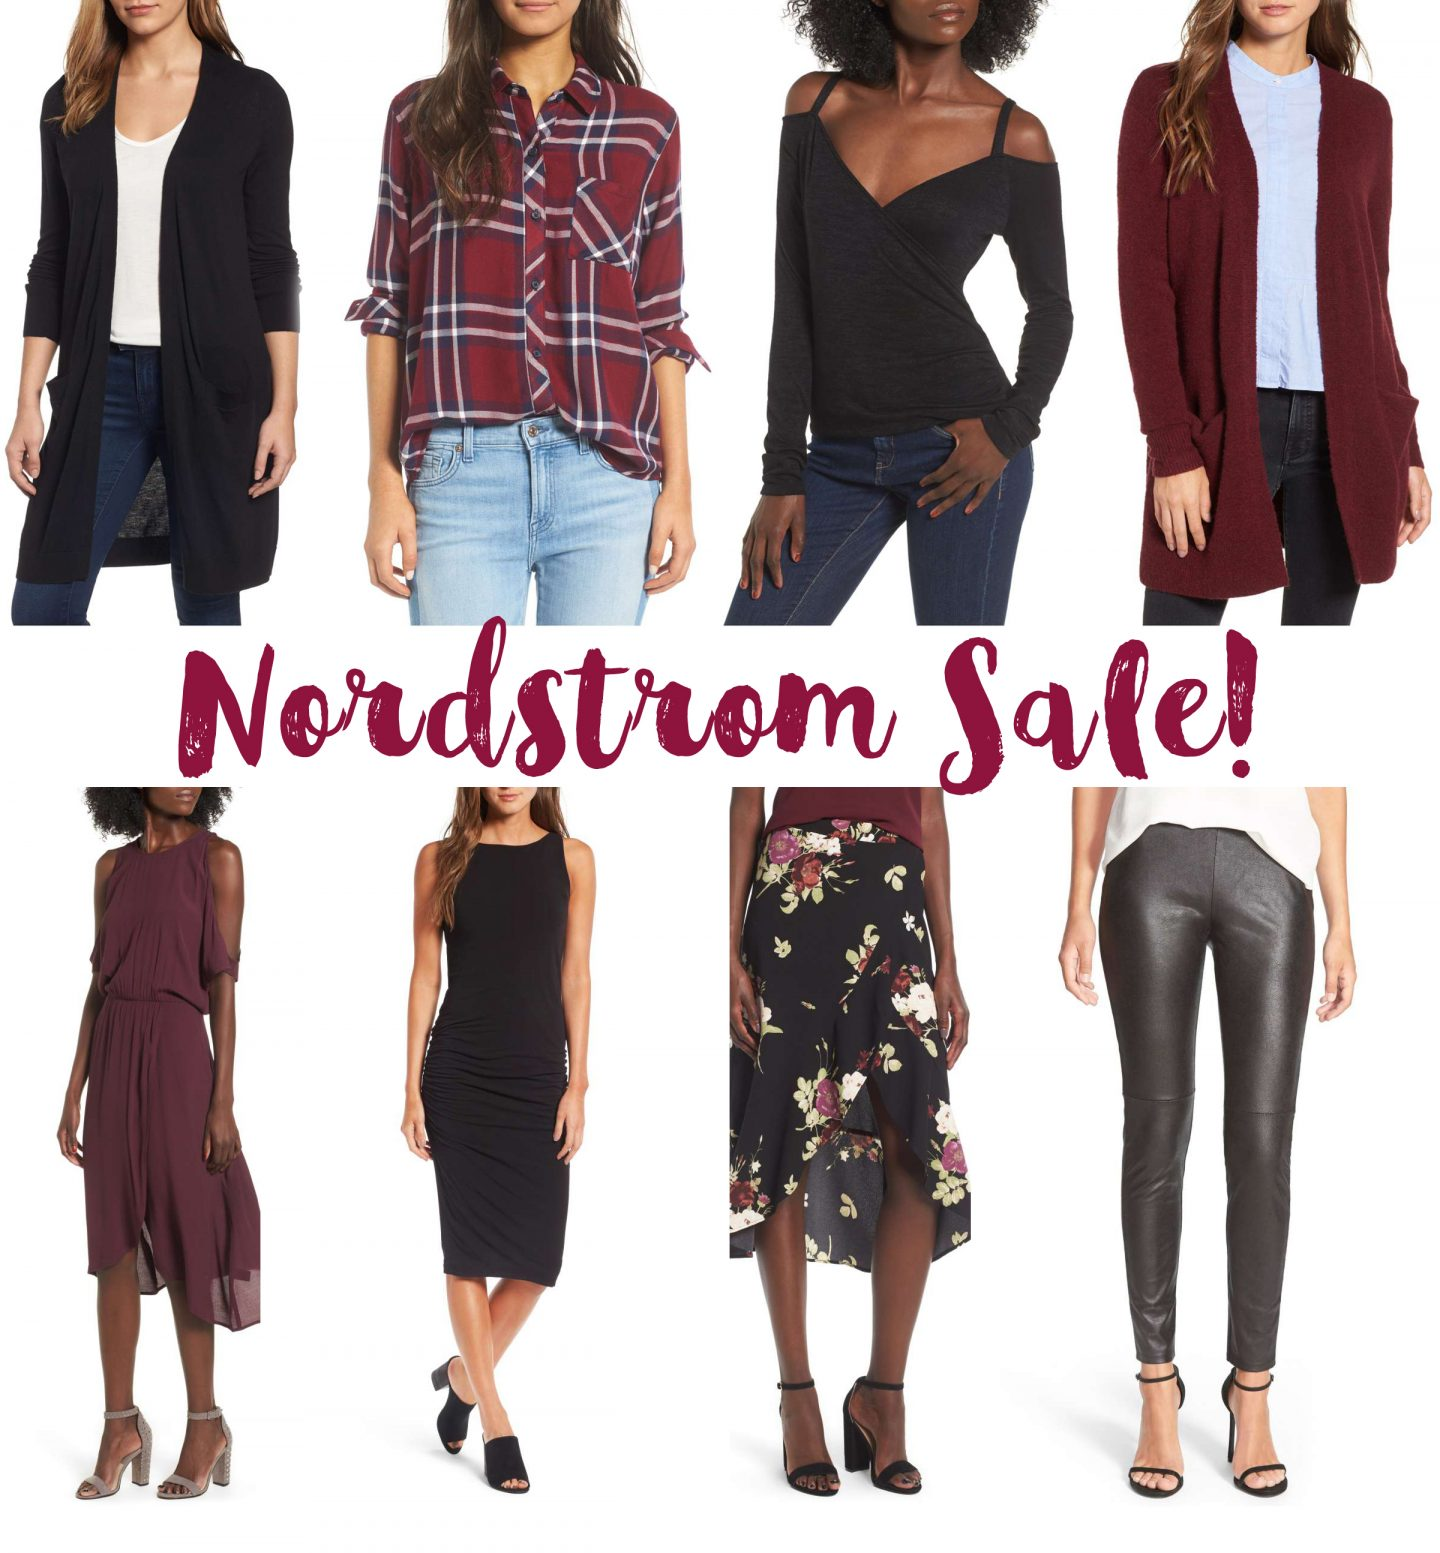 Nordstrom Anniversary Sale: What I Ordered! - Chase Amie